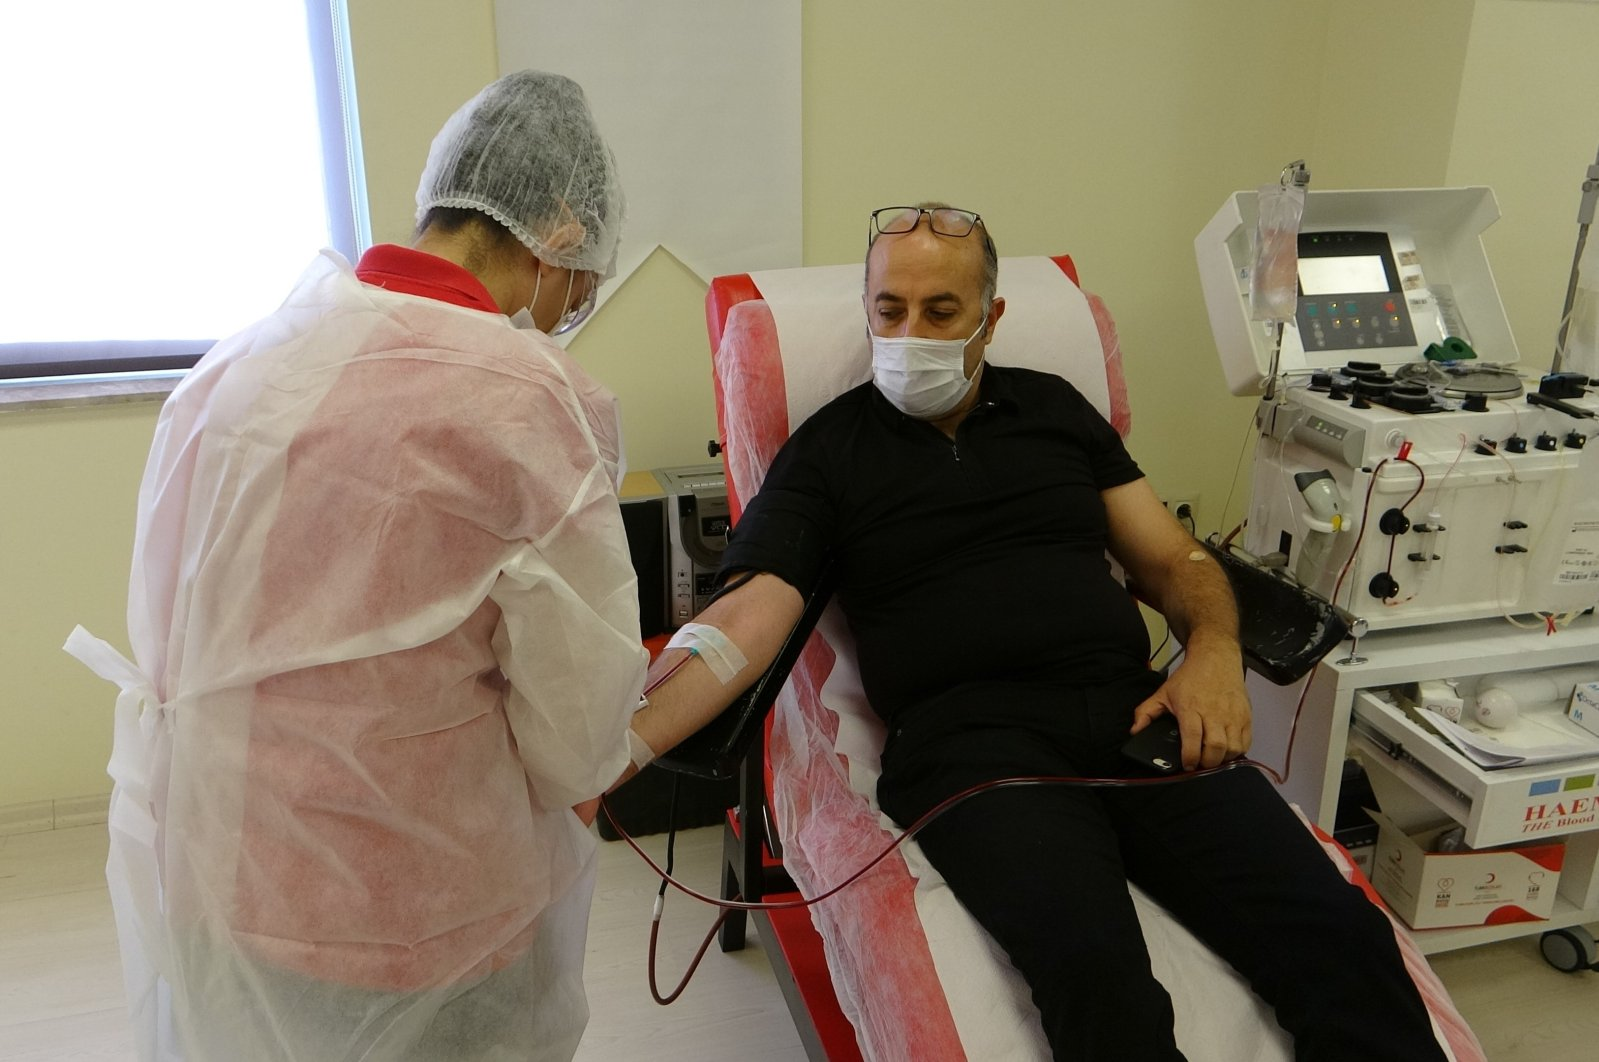 A recovered COVID-19 patient donates plasma at a Turkish Red Crescent (Kızılay) center, in Adana, southern Turkey, Nov. 16, 2020. (IHA Photo)